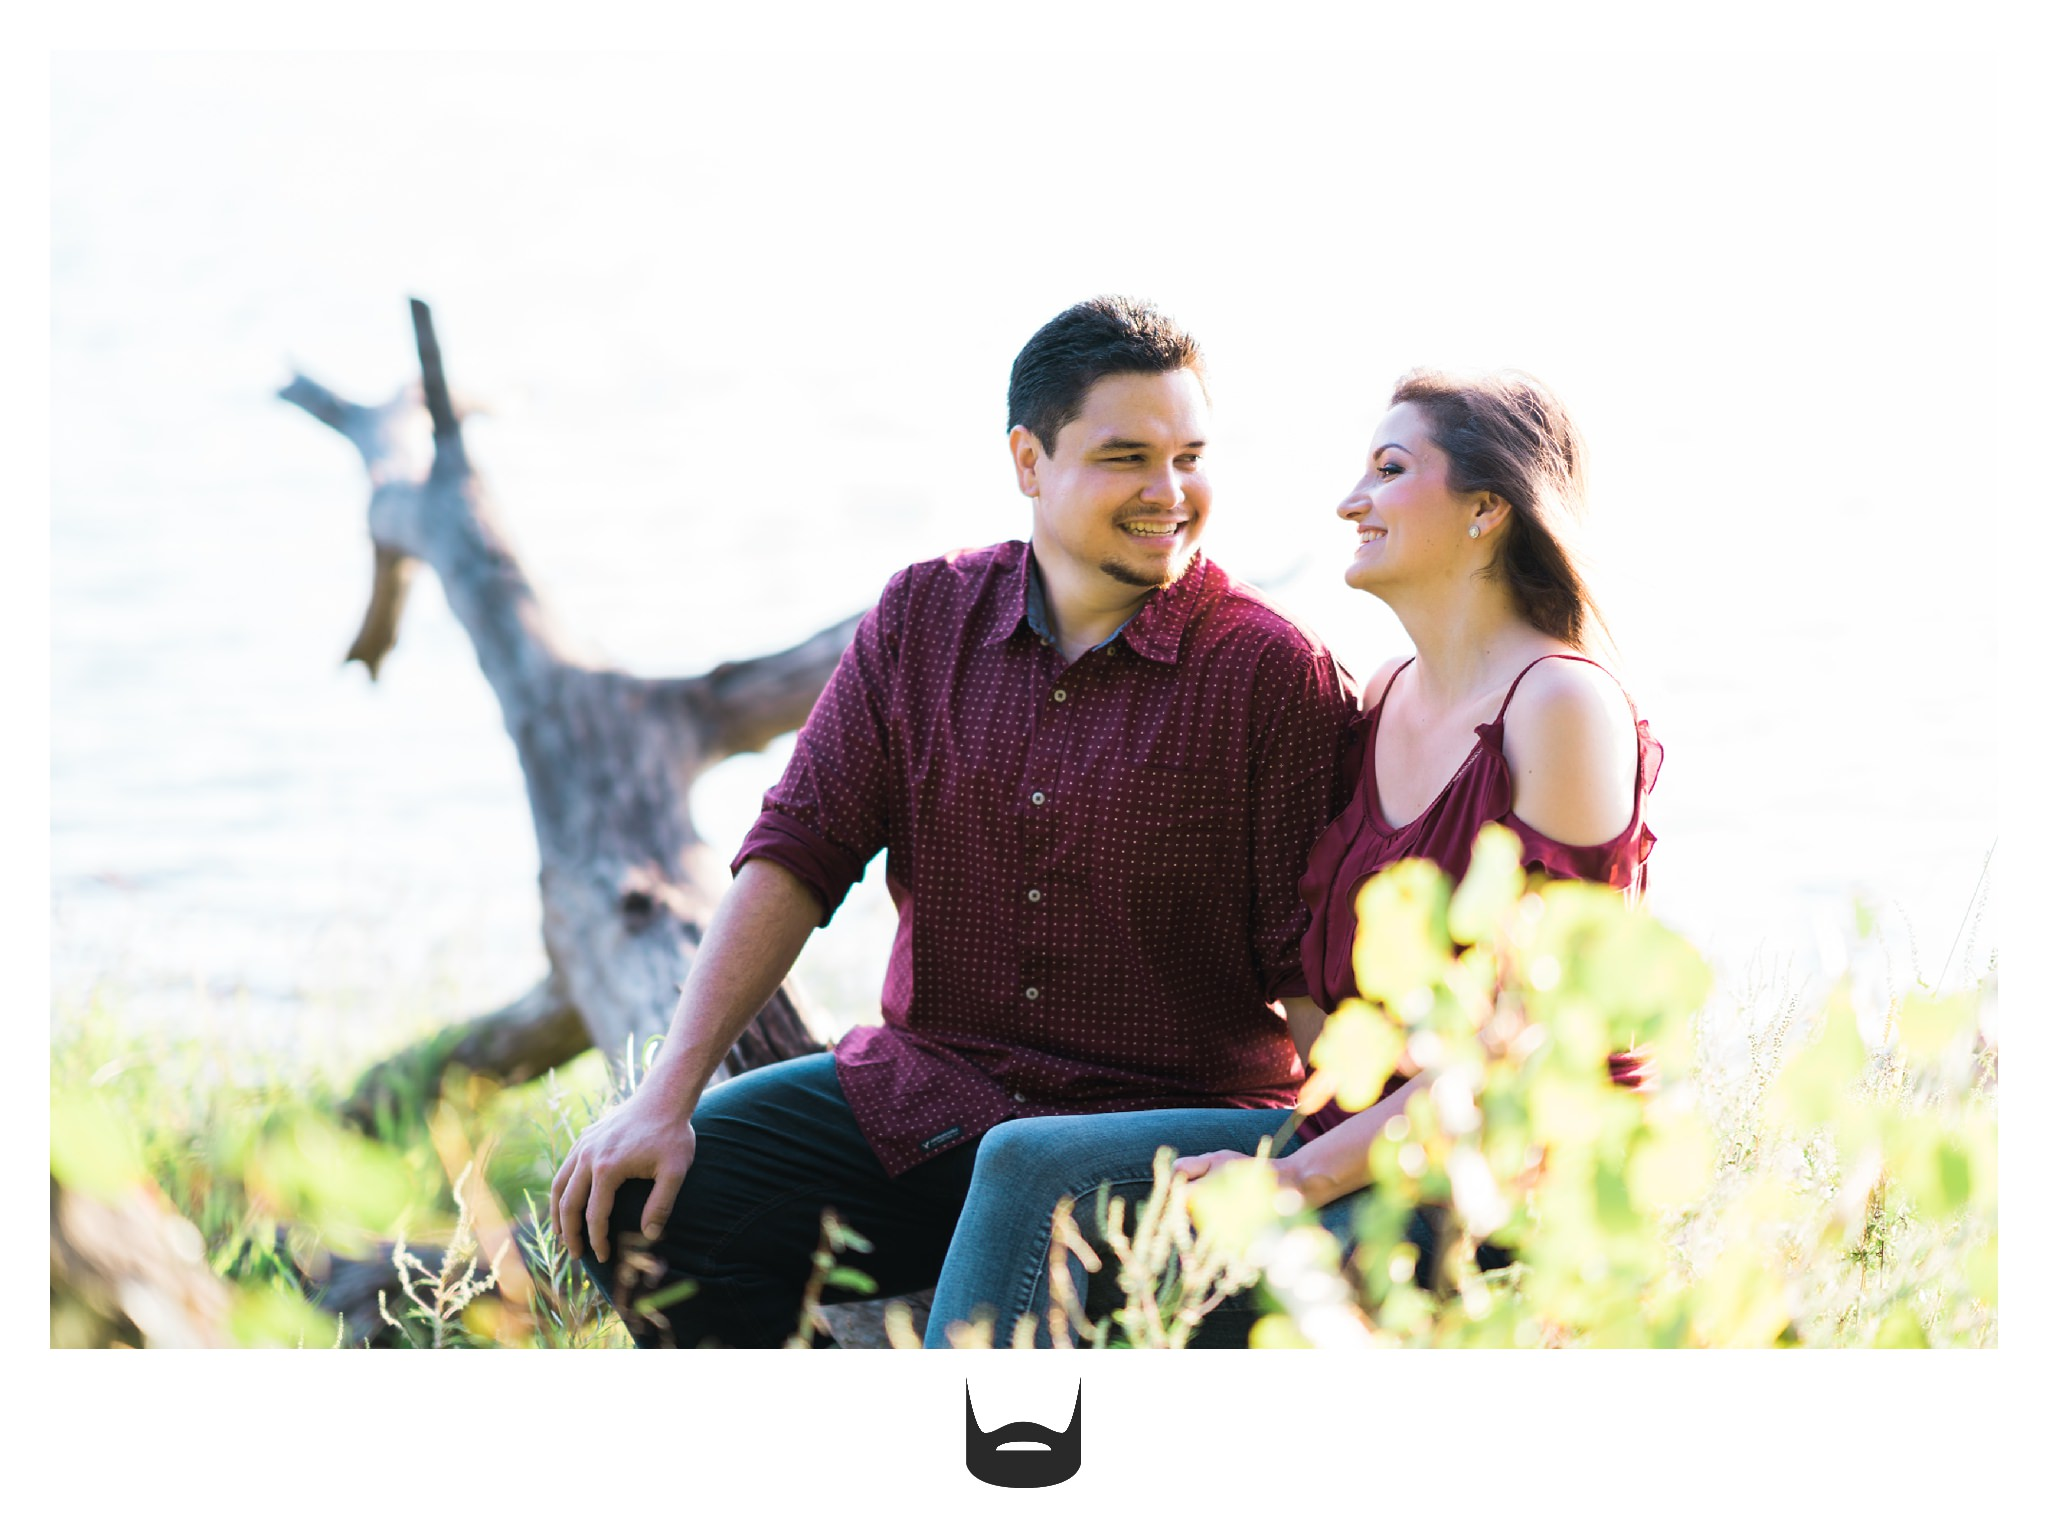 des moines engagement photography best